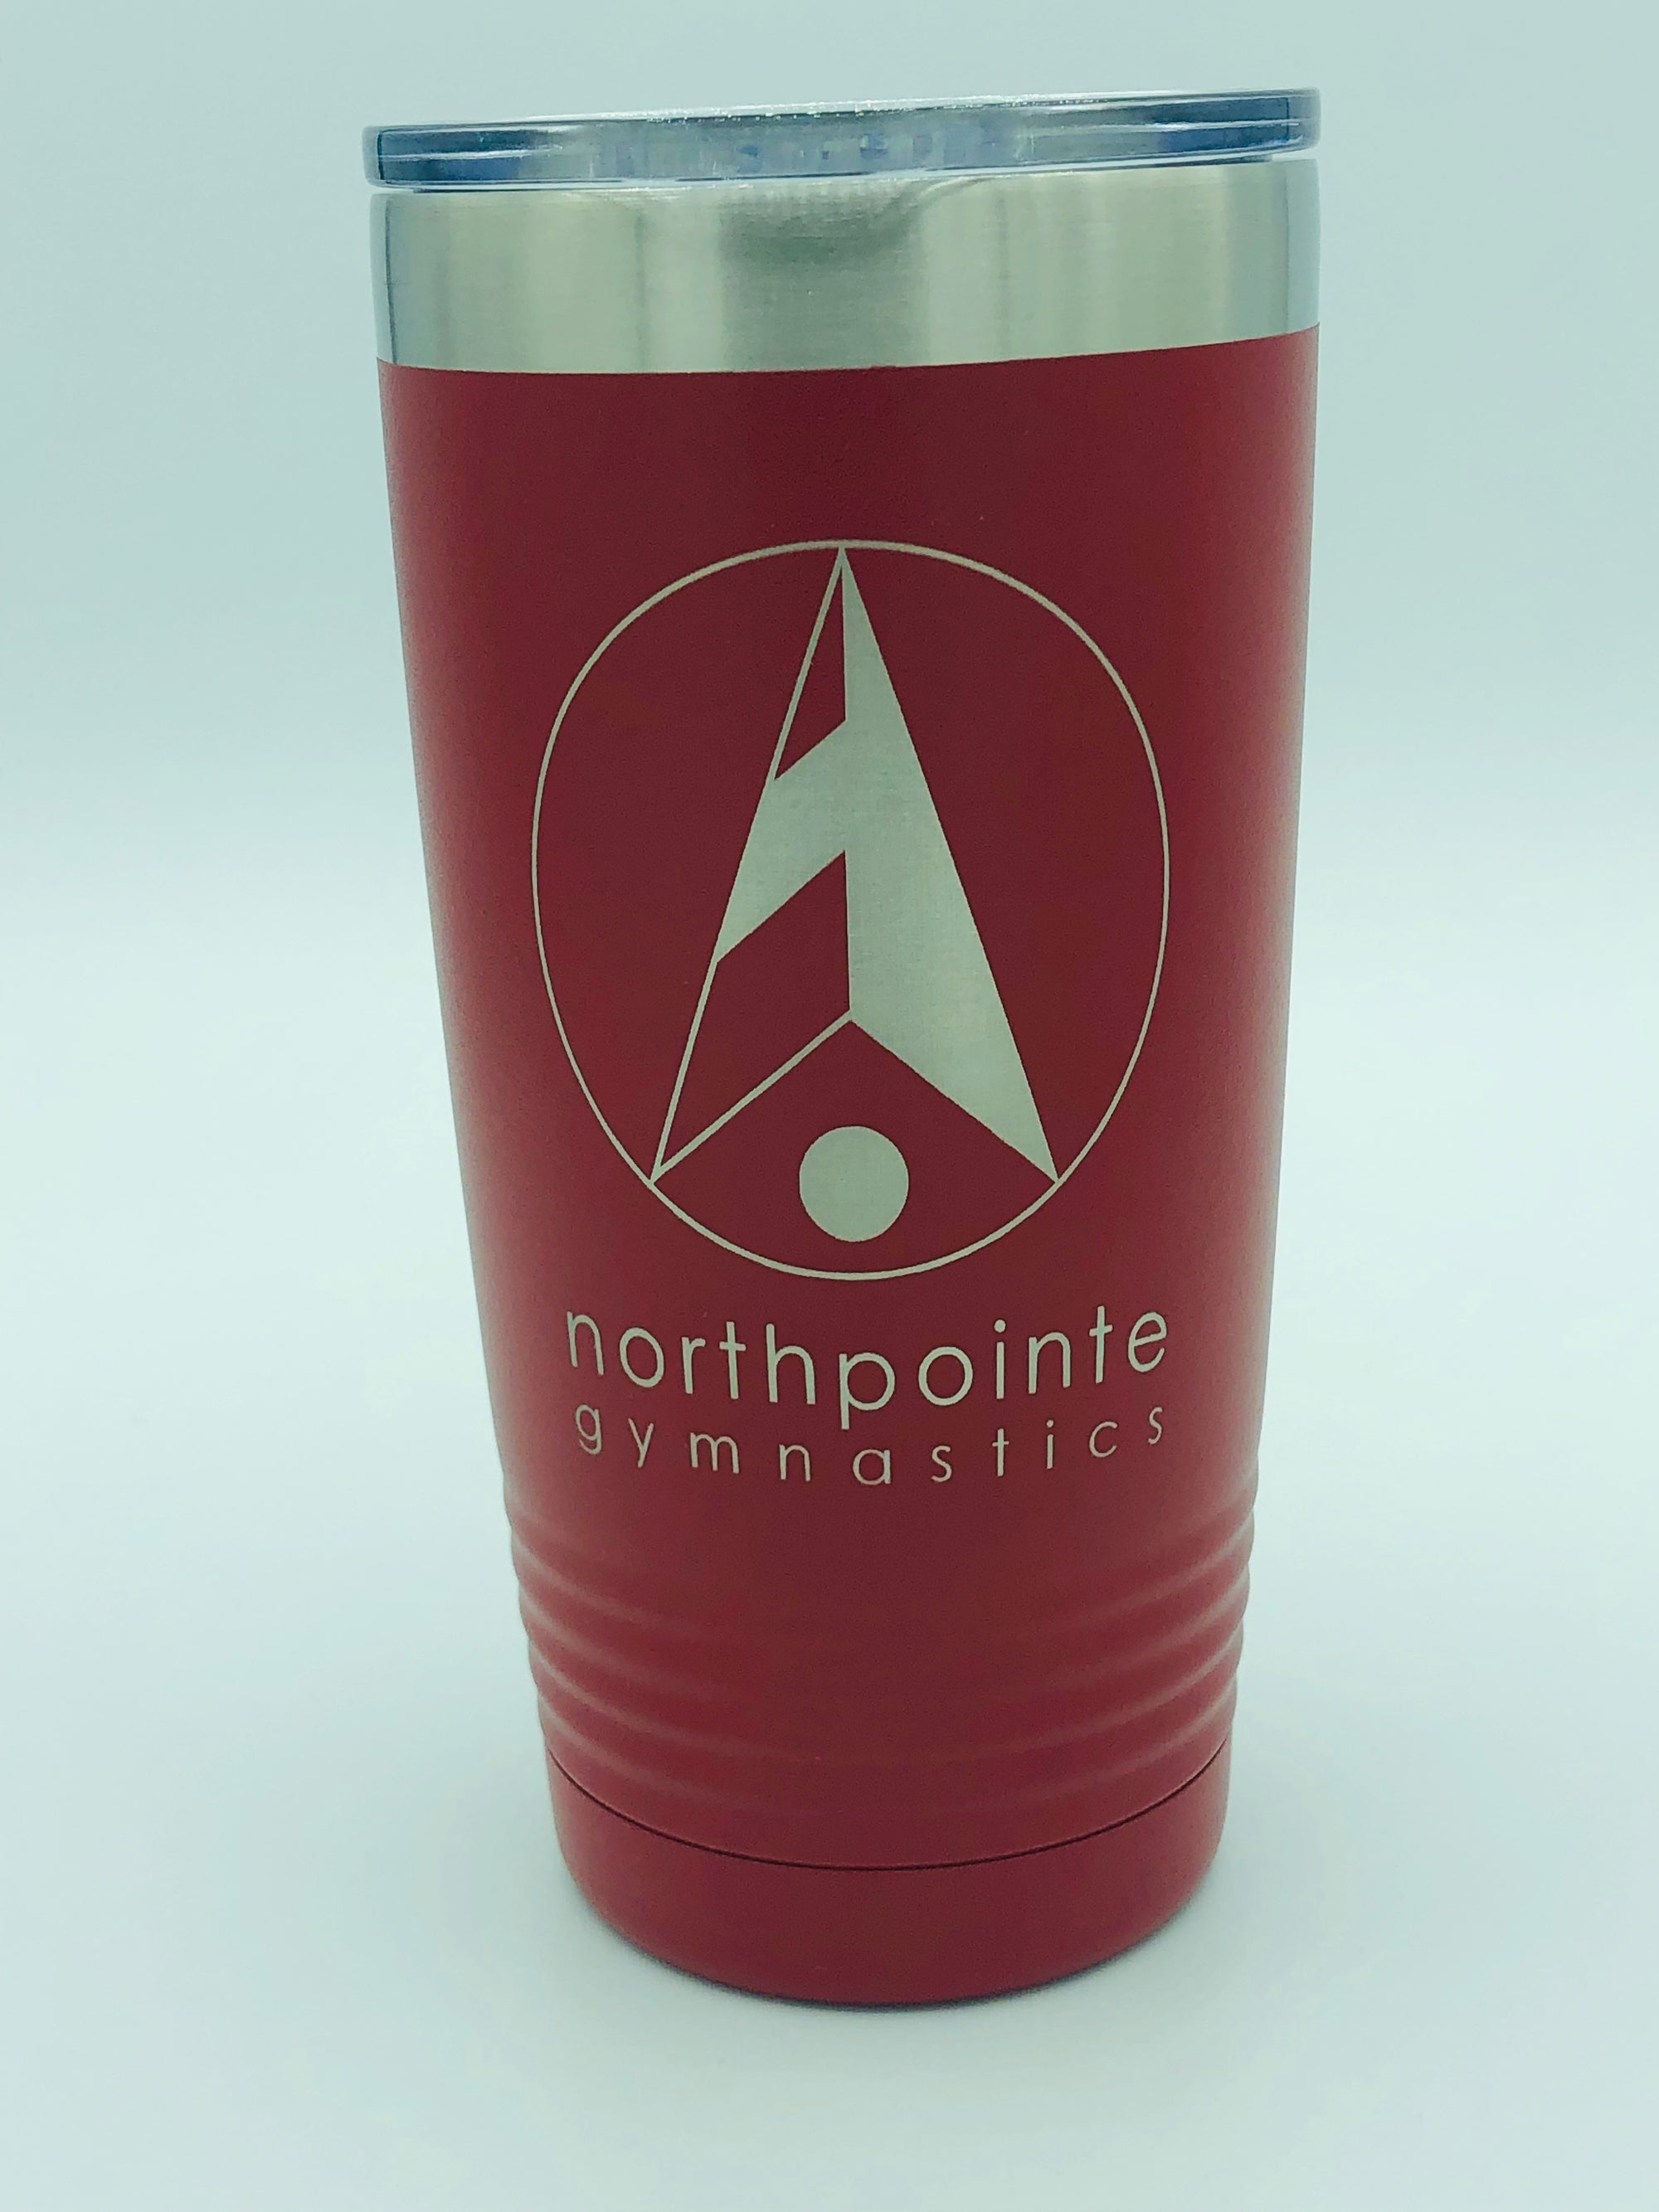 Northpointe Gymnastics, 20 oz polar